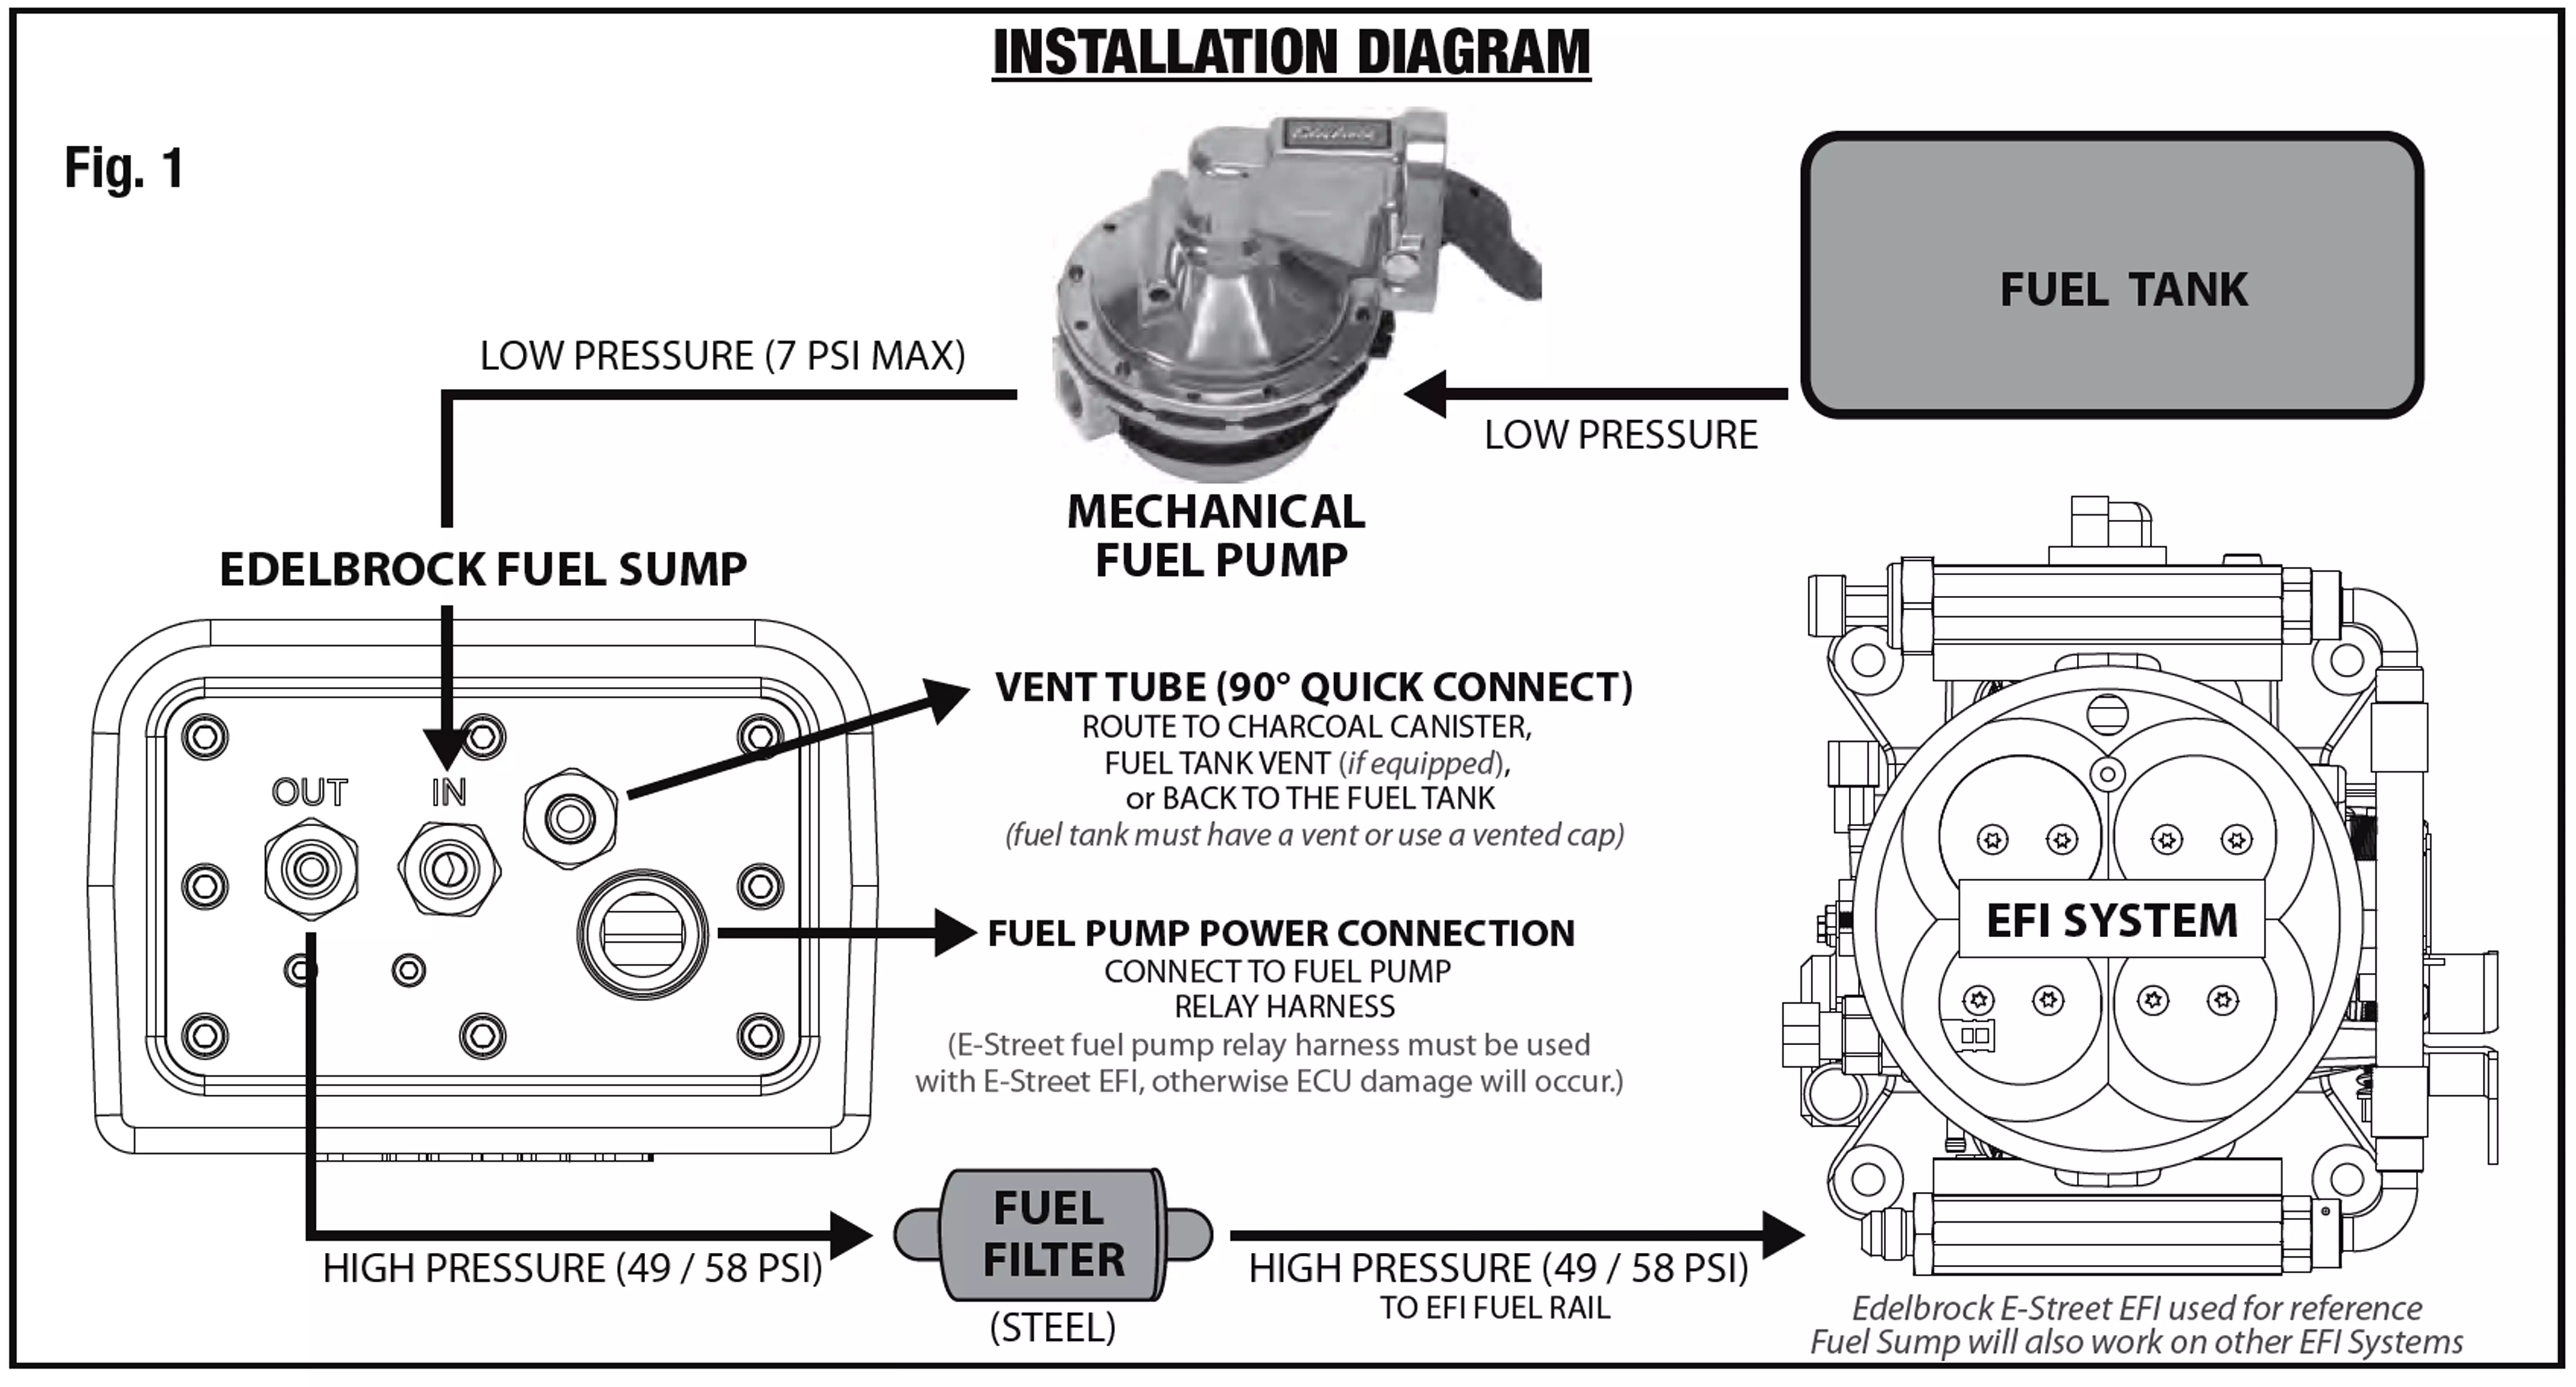 Perfect wiring diagram for nitrous systems festooning electrical nice 2 stage nitrous wiring diagram frieze electrical diagram cheapraybanclubmaster Image collections